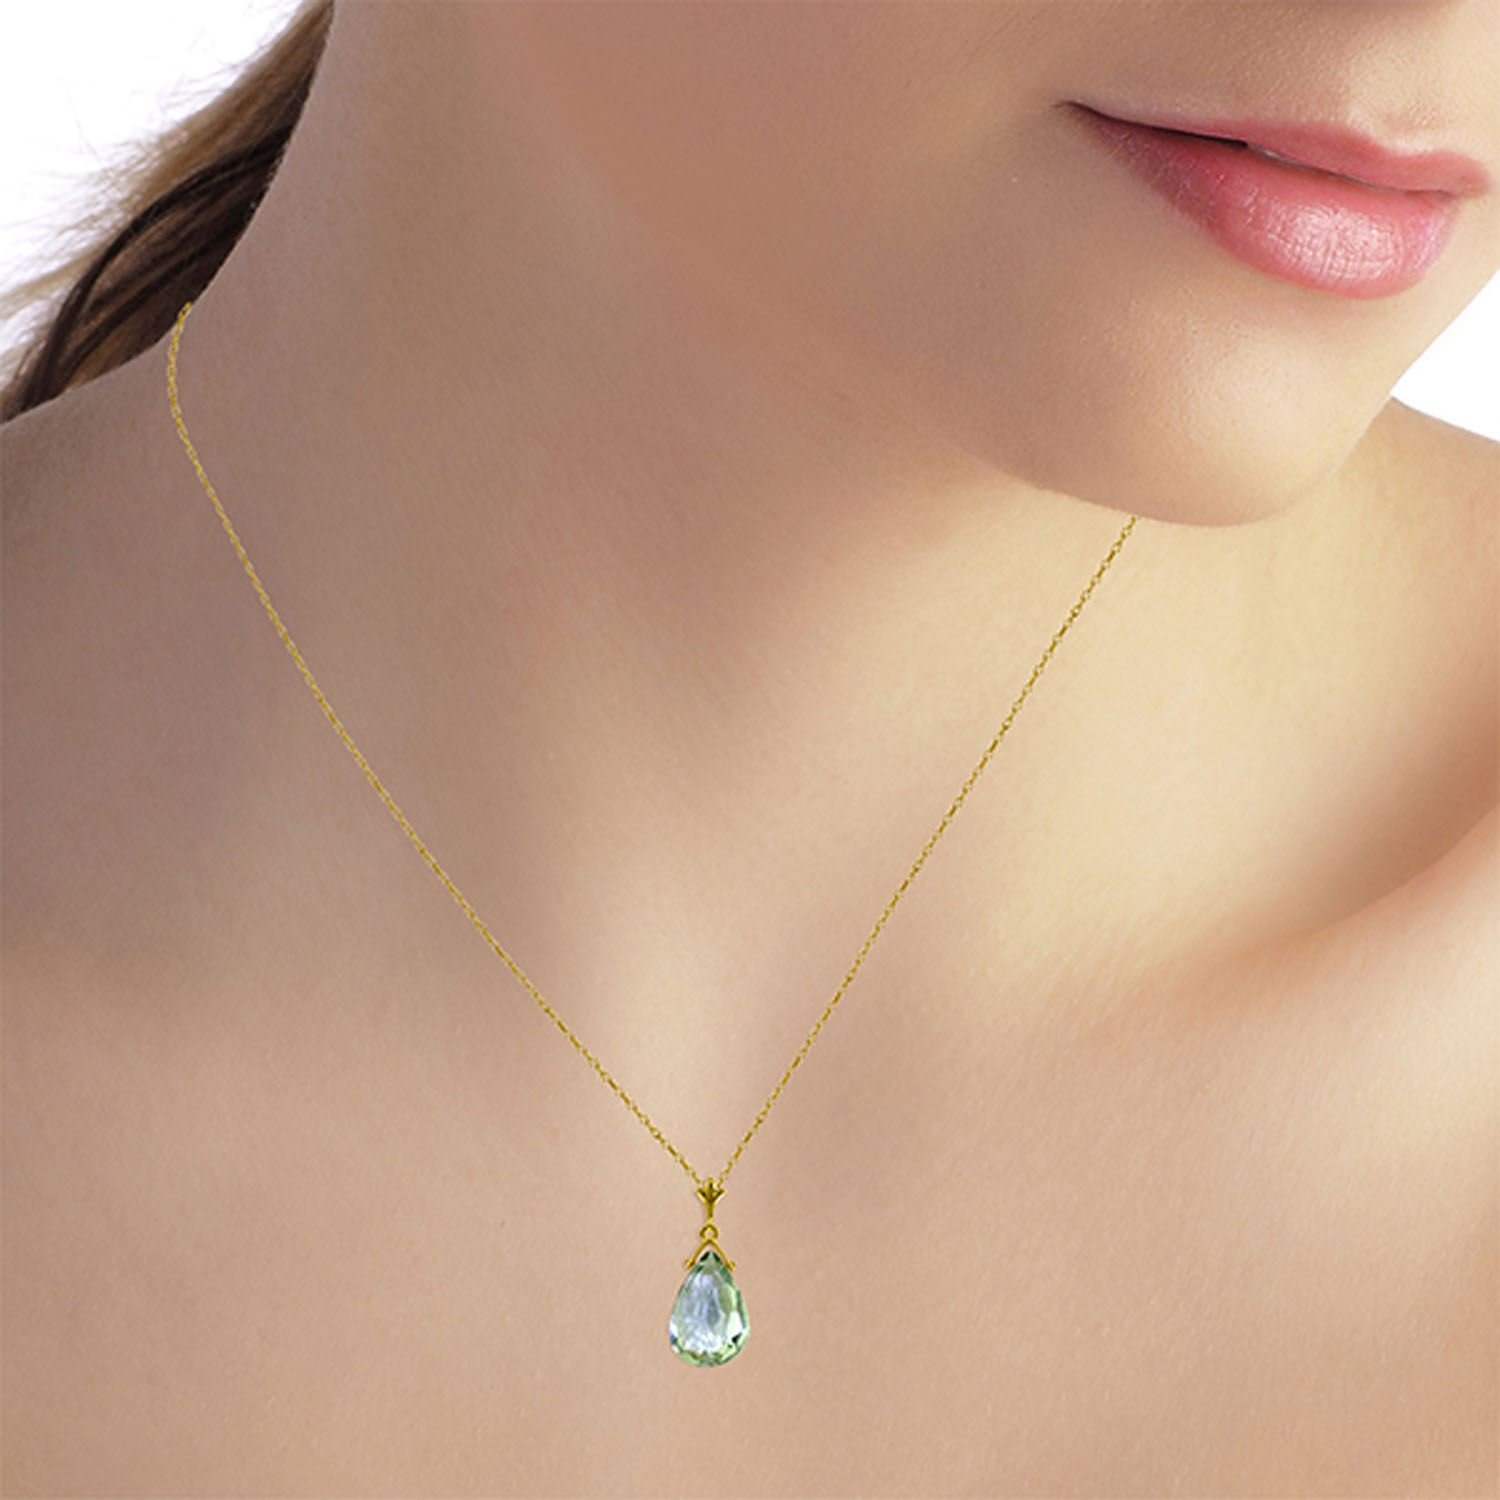 ALARRI 5.1 Carat 14K Solid Gold Necklace Briolette Green Amethyst with 22 Inch Chain Length